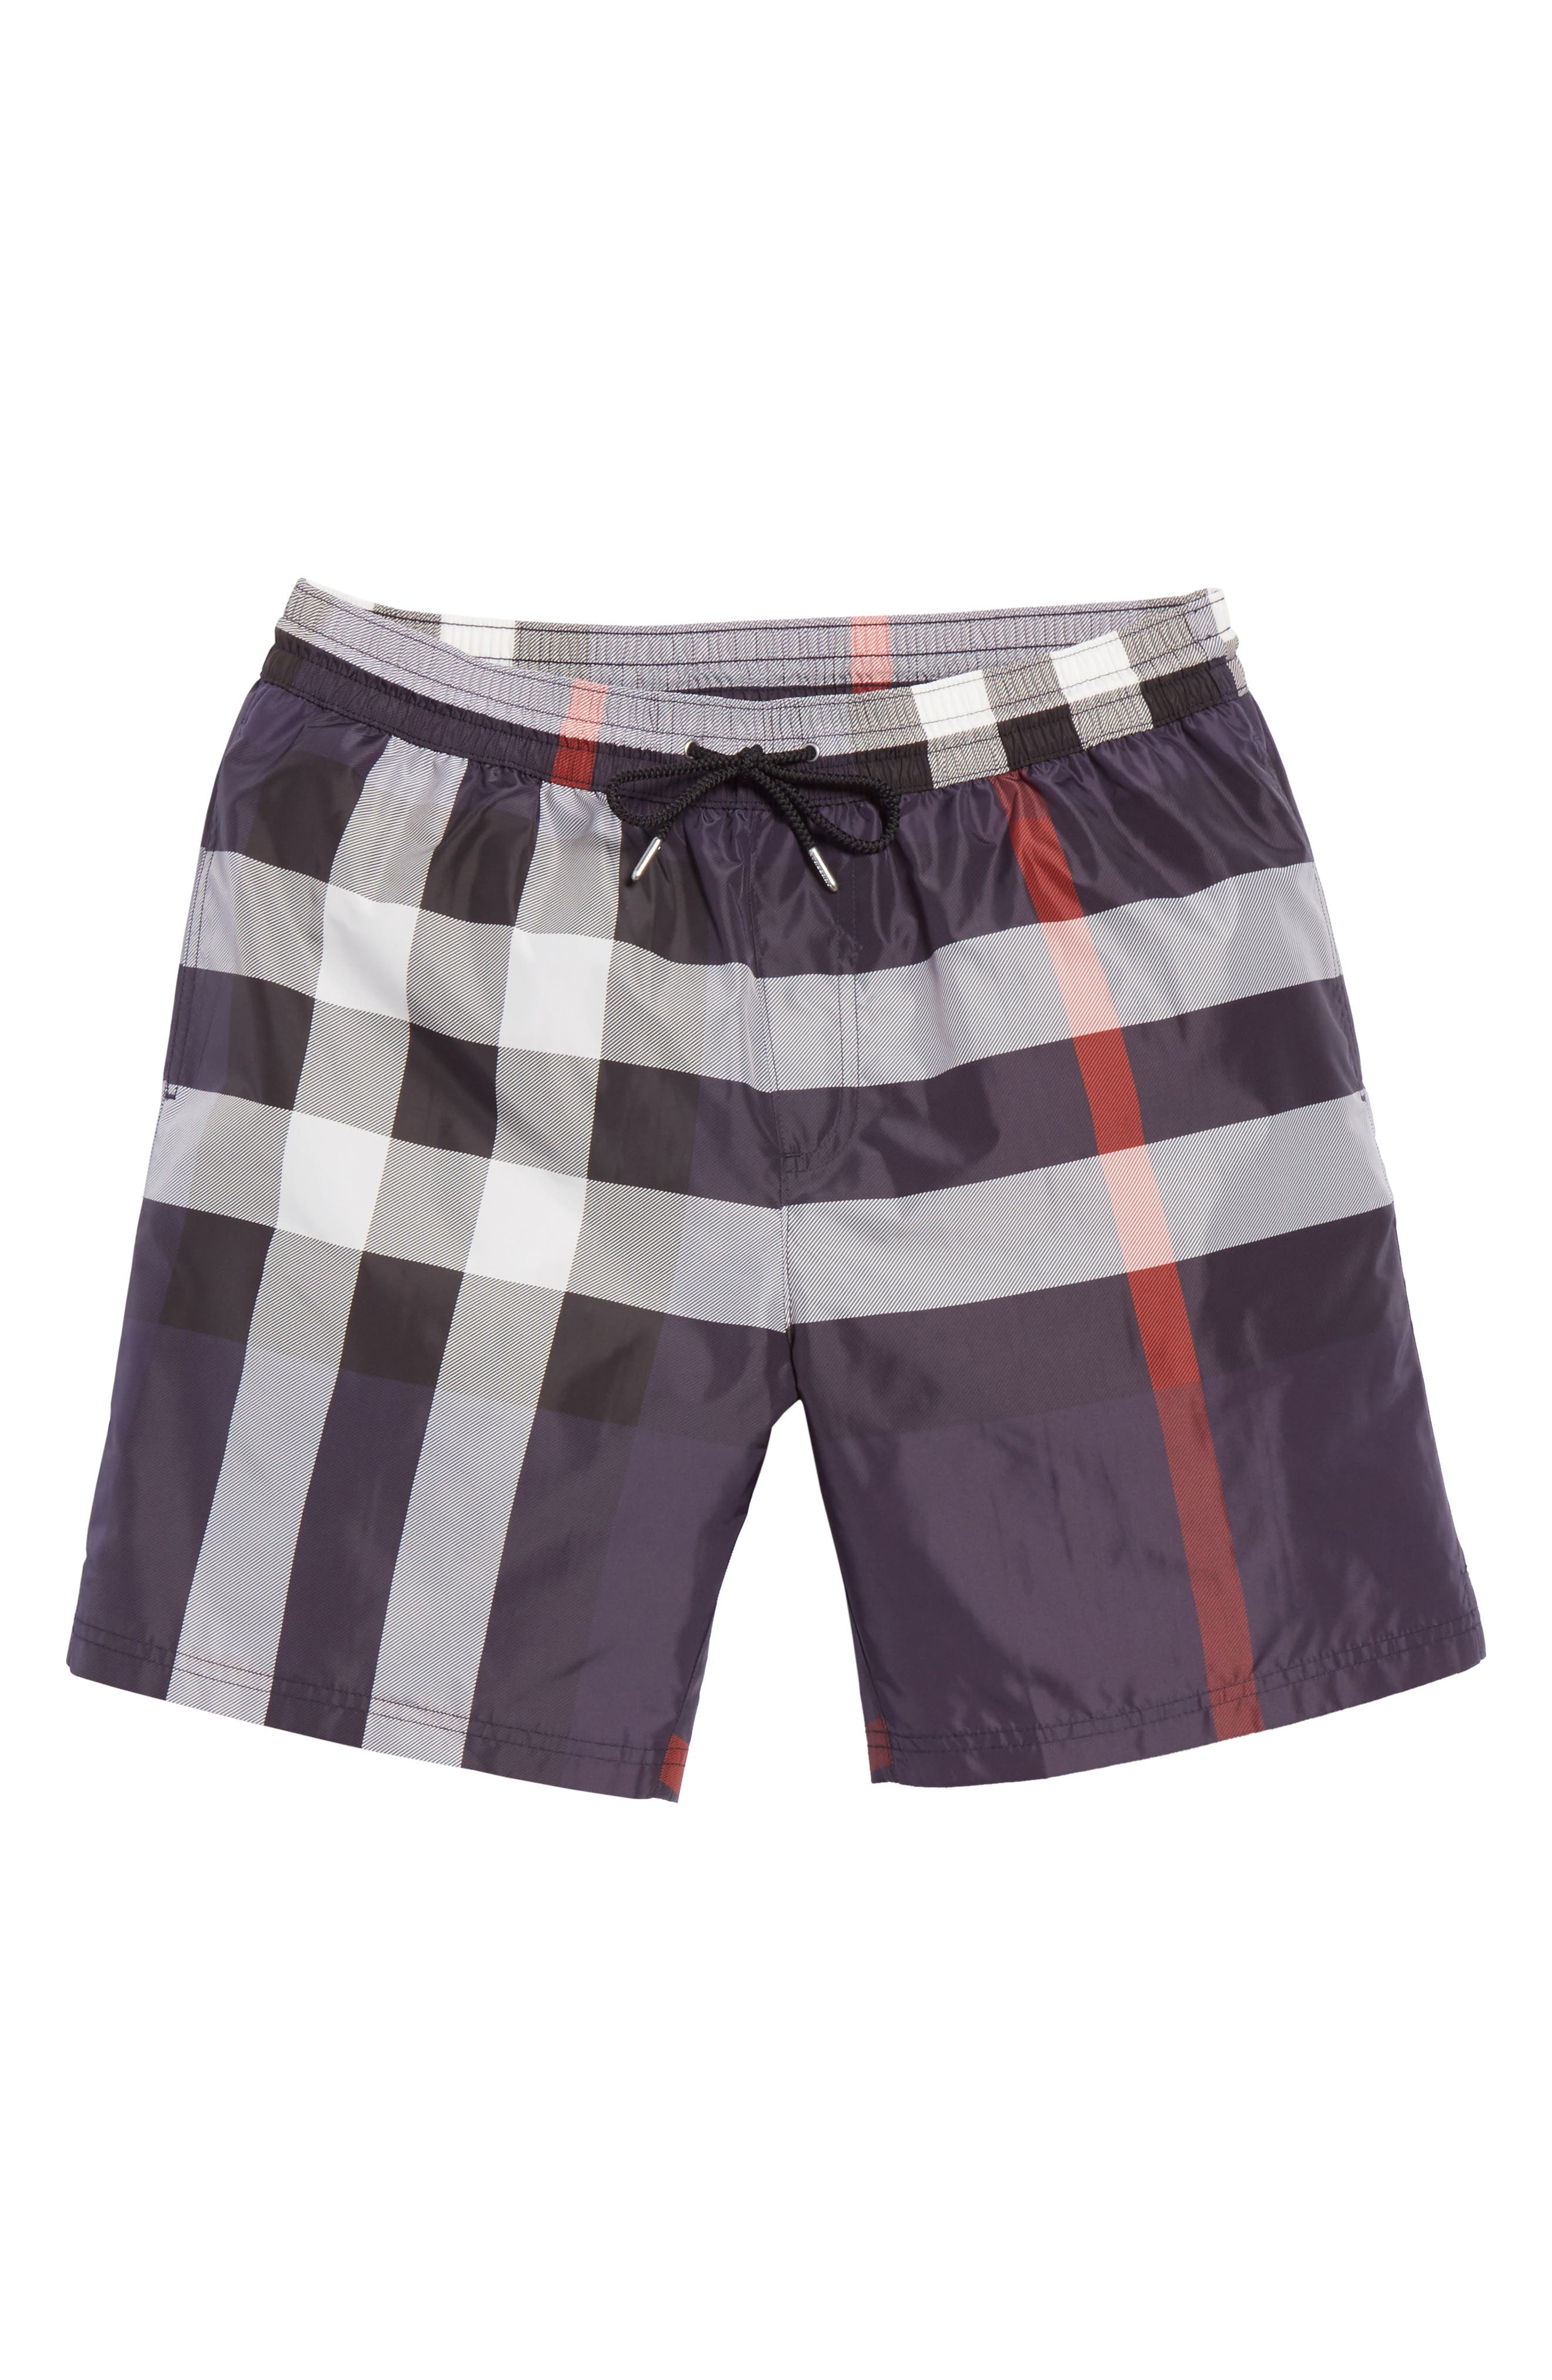 Guildes Check Swim Trunks,                             Alternate thumbnail 6, color,                             410